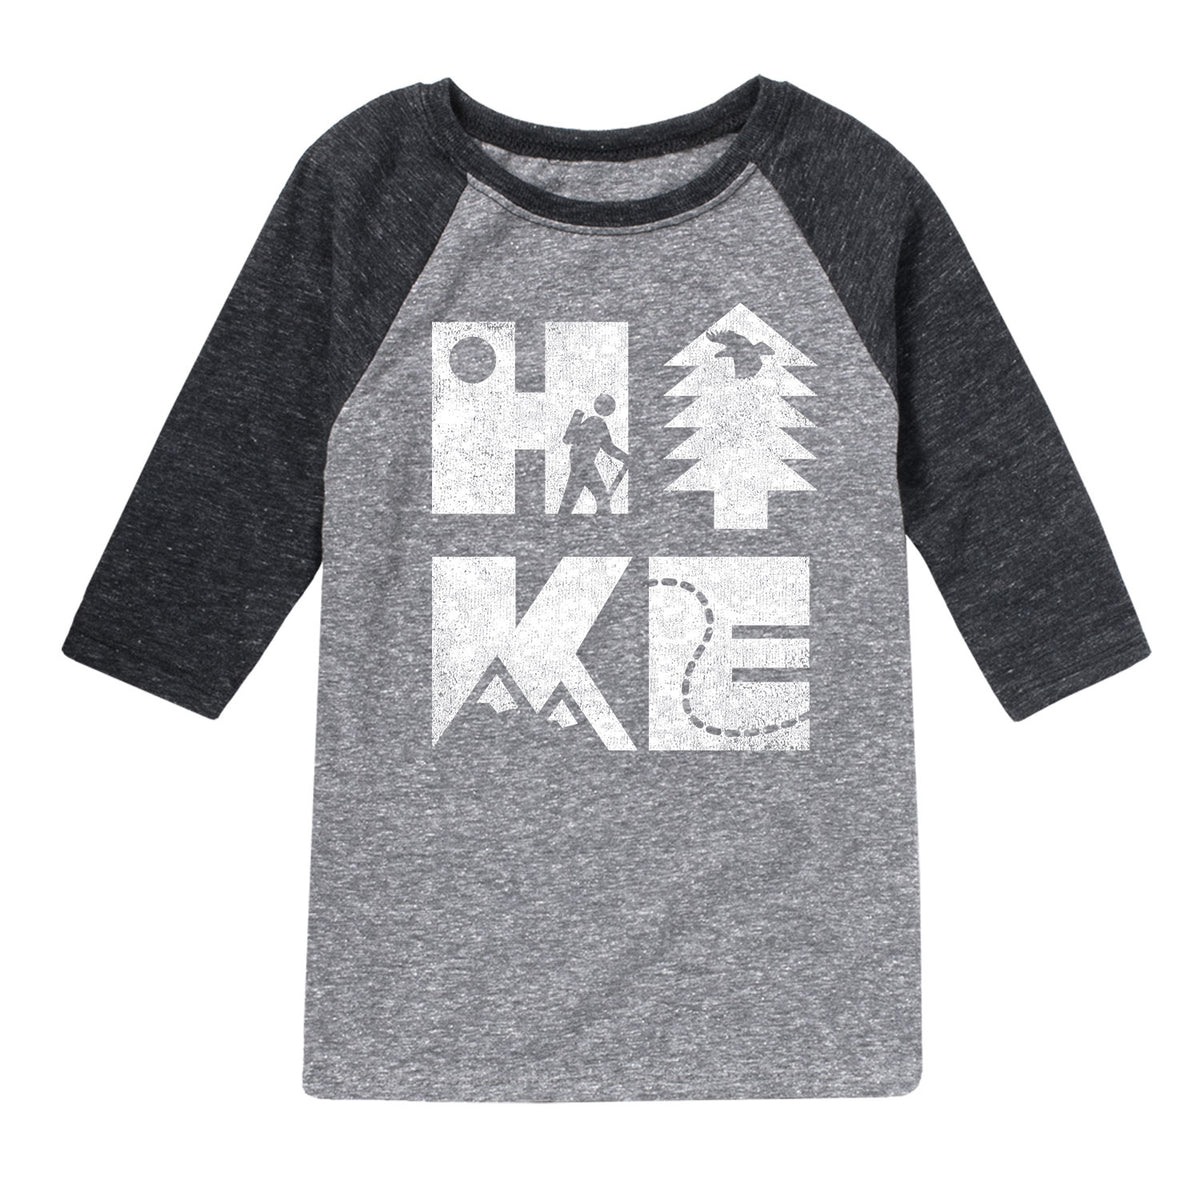 Hike Icons - Youth & Toddler Raglan